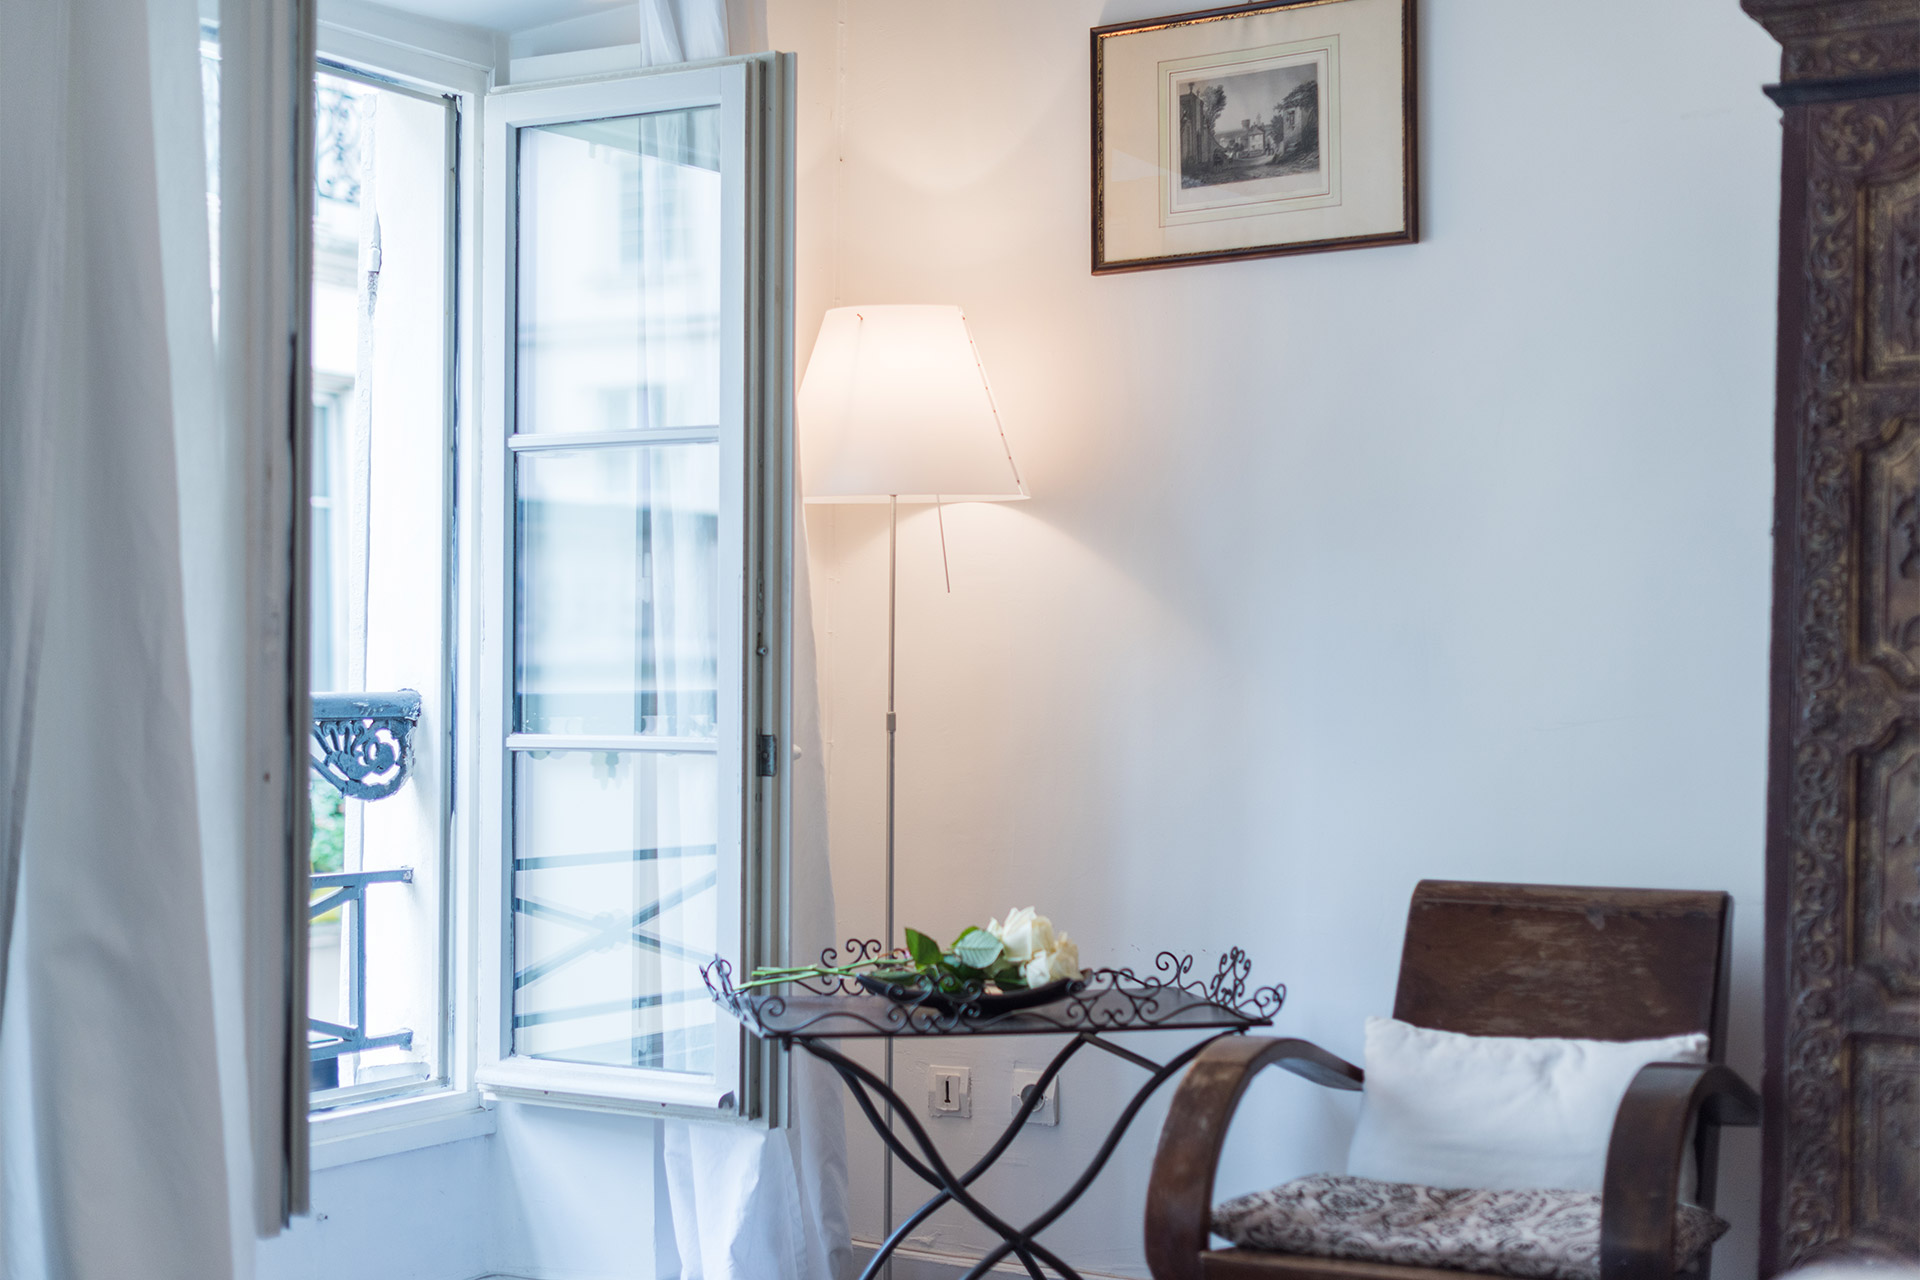 Charming seating area next to the window in the Jacquere vacation rental offered by Paris Perfect